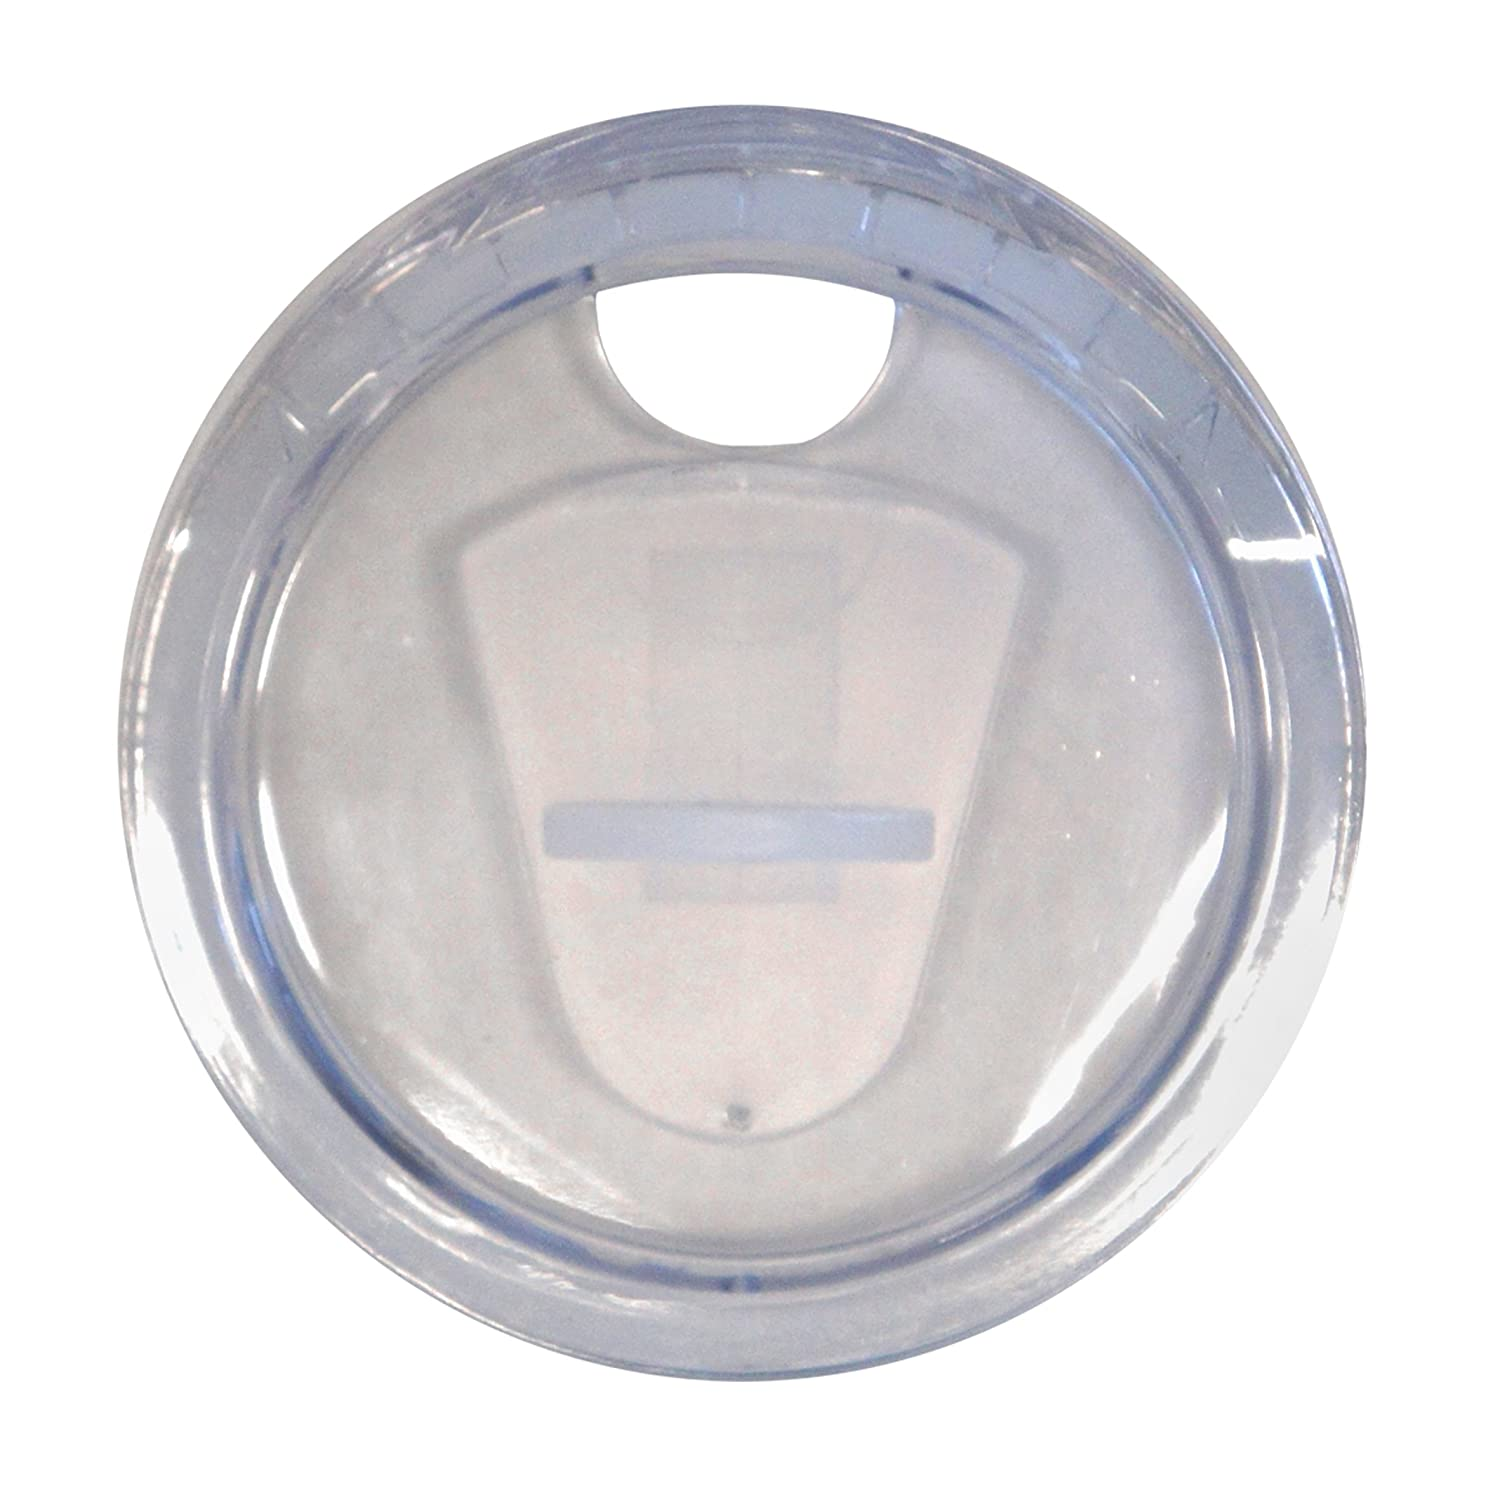 Boelter Brands Replacement Slider Top Conversion Lid Tumblers